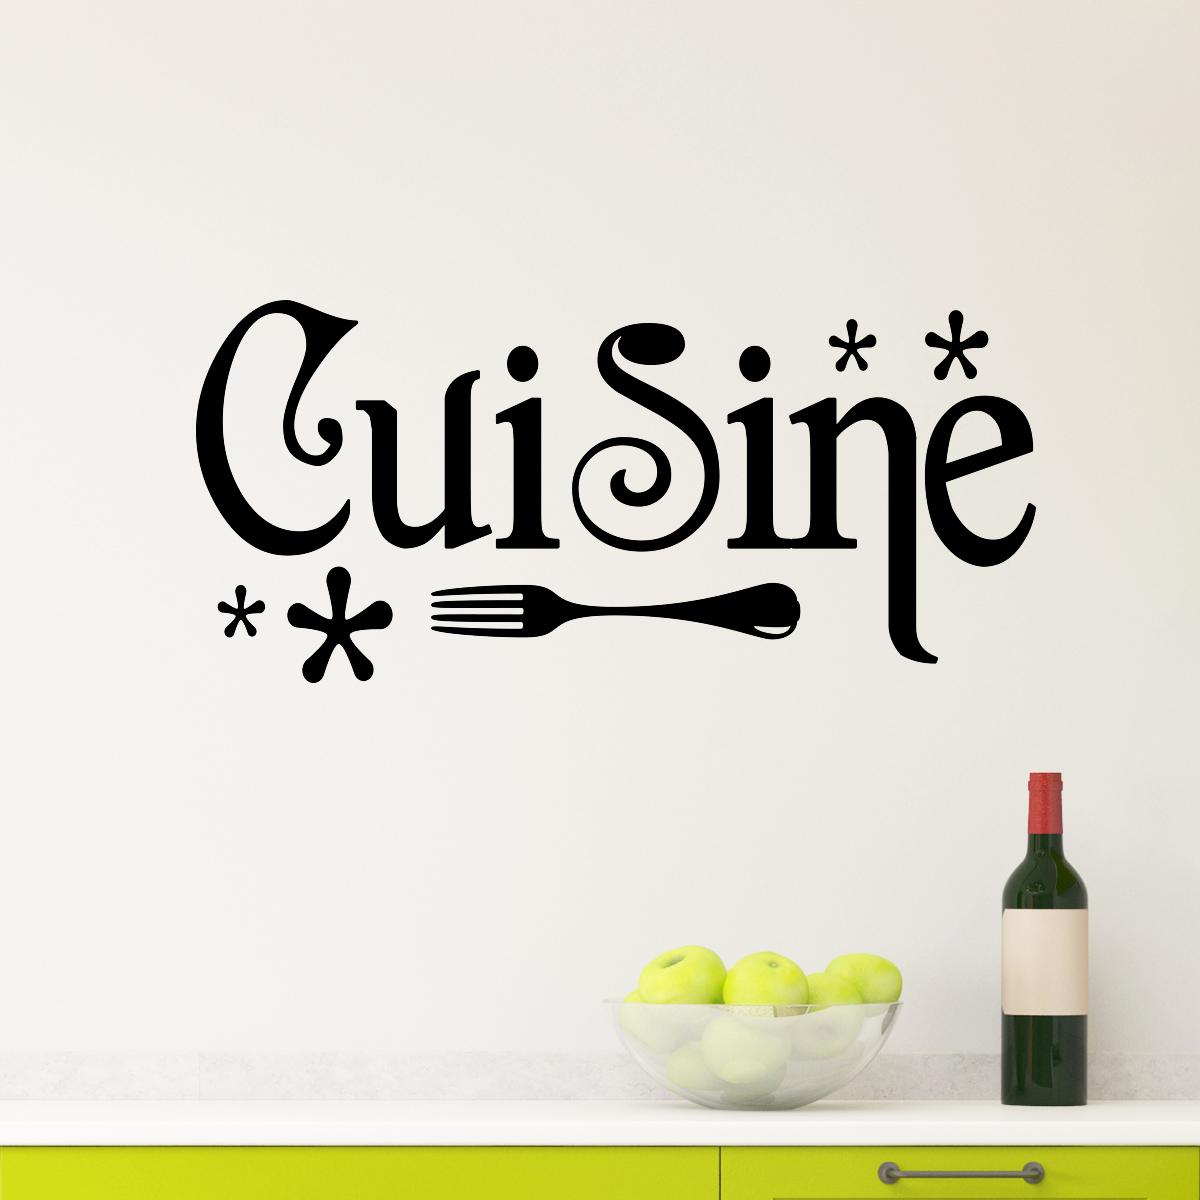 sticker cuisine design stickers cuisine textes et recettes ambiance sticker. Black Bedroom Furniture Sets. Home Design Ideas